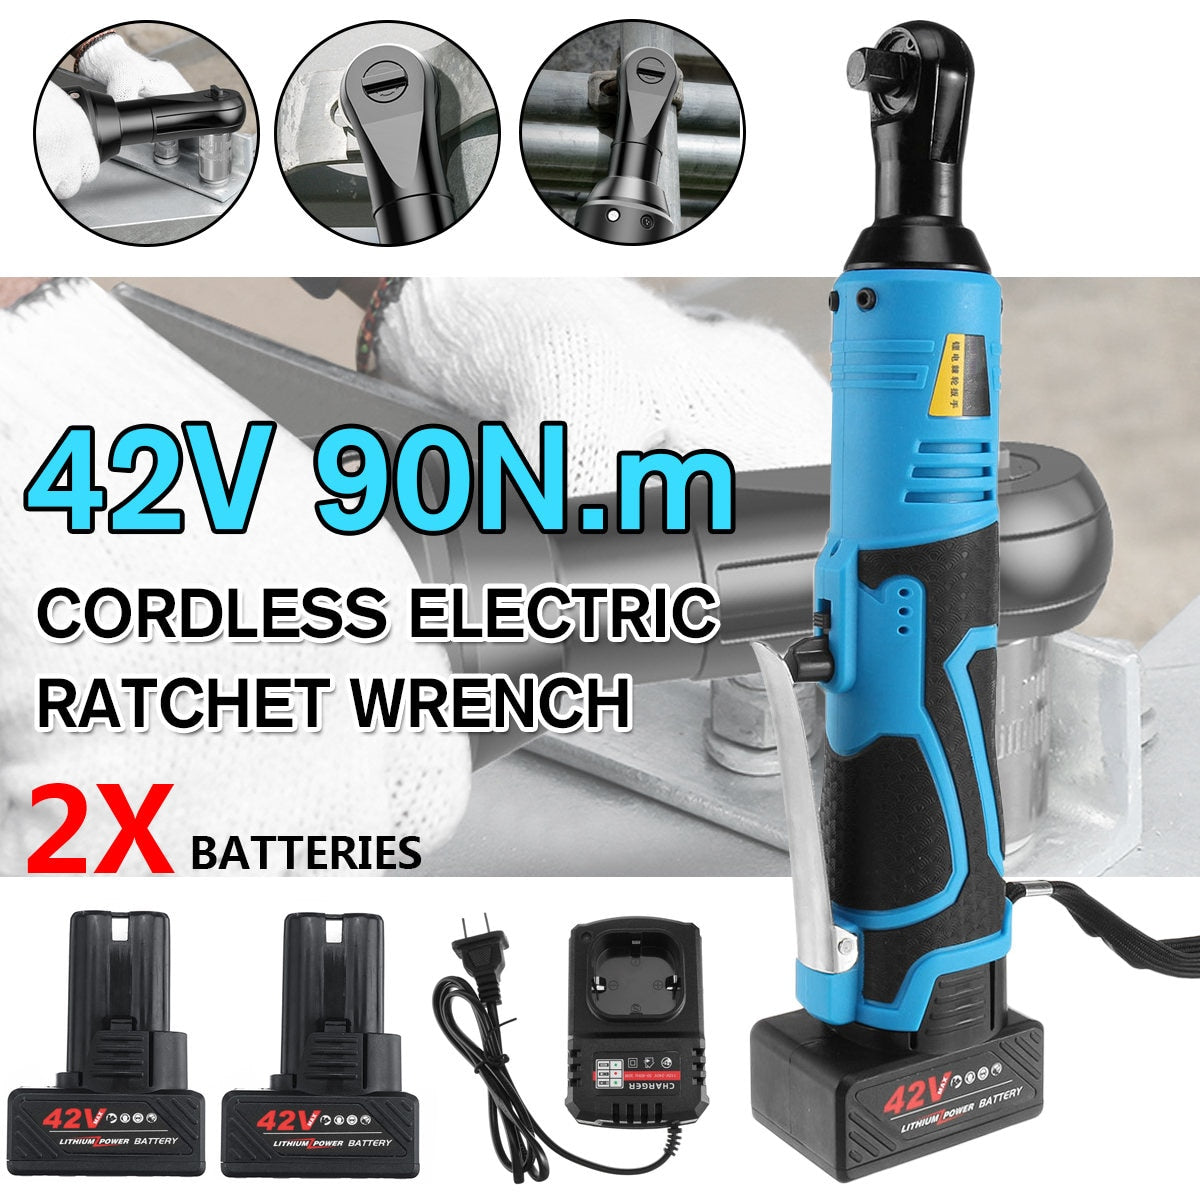 Electric Wrench 42V